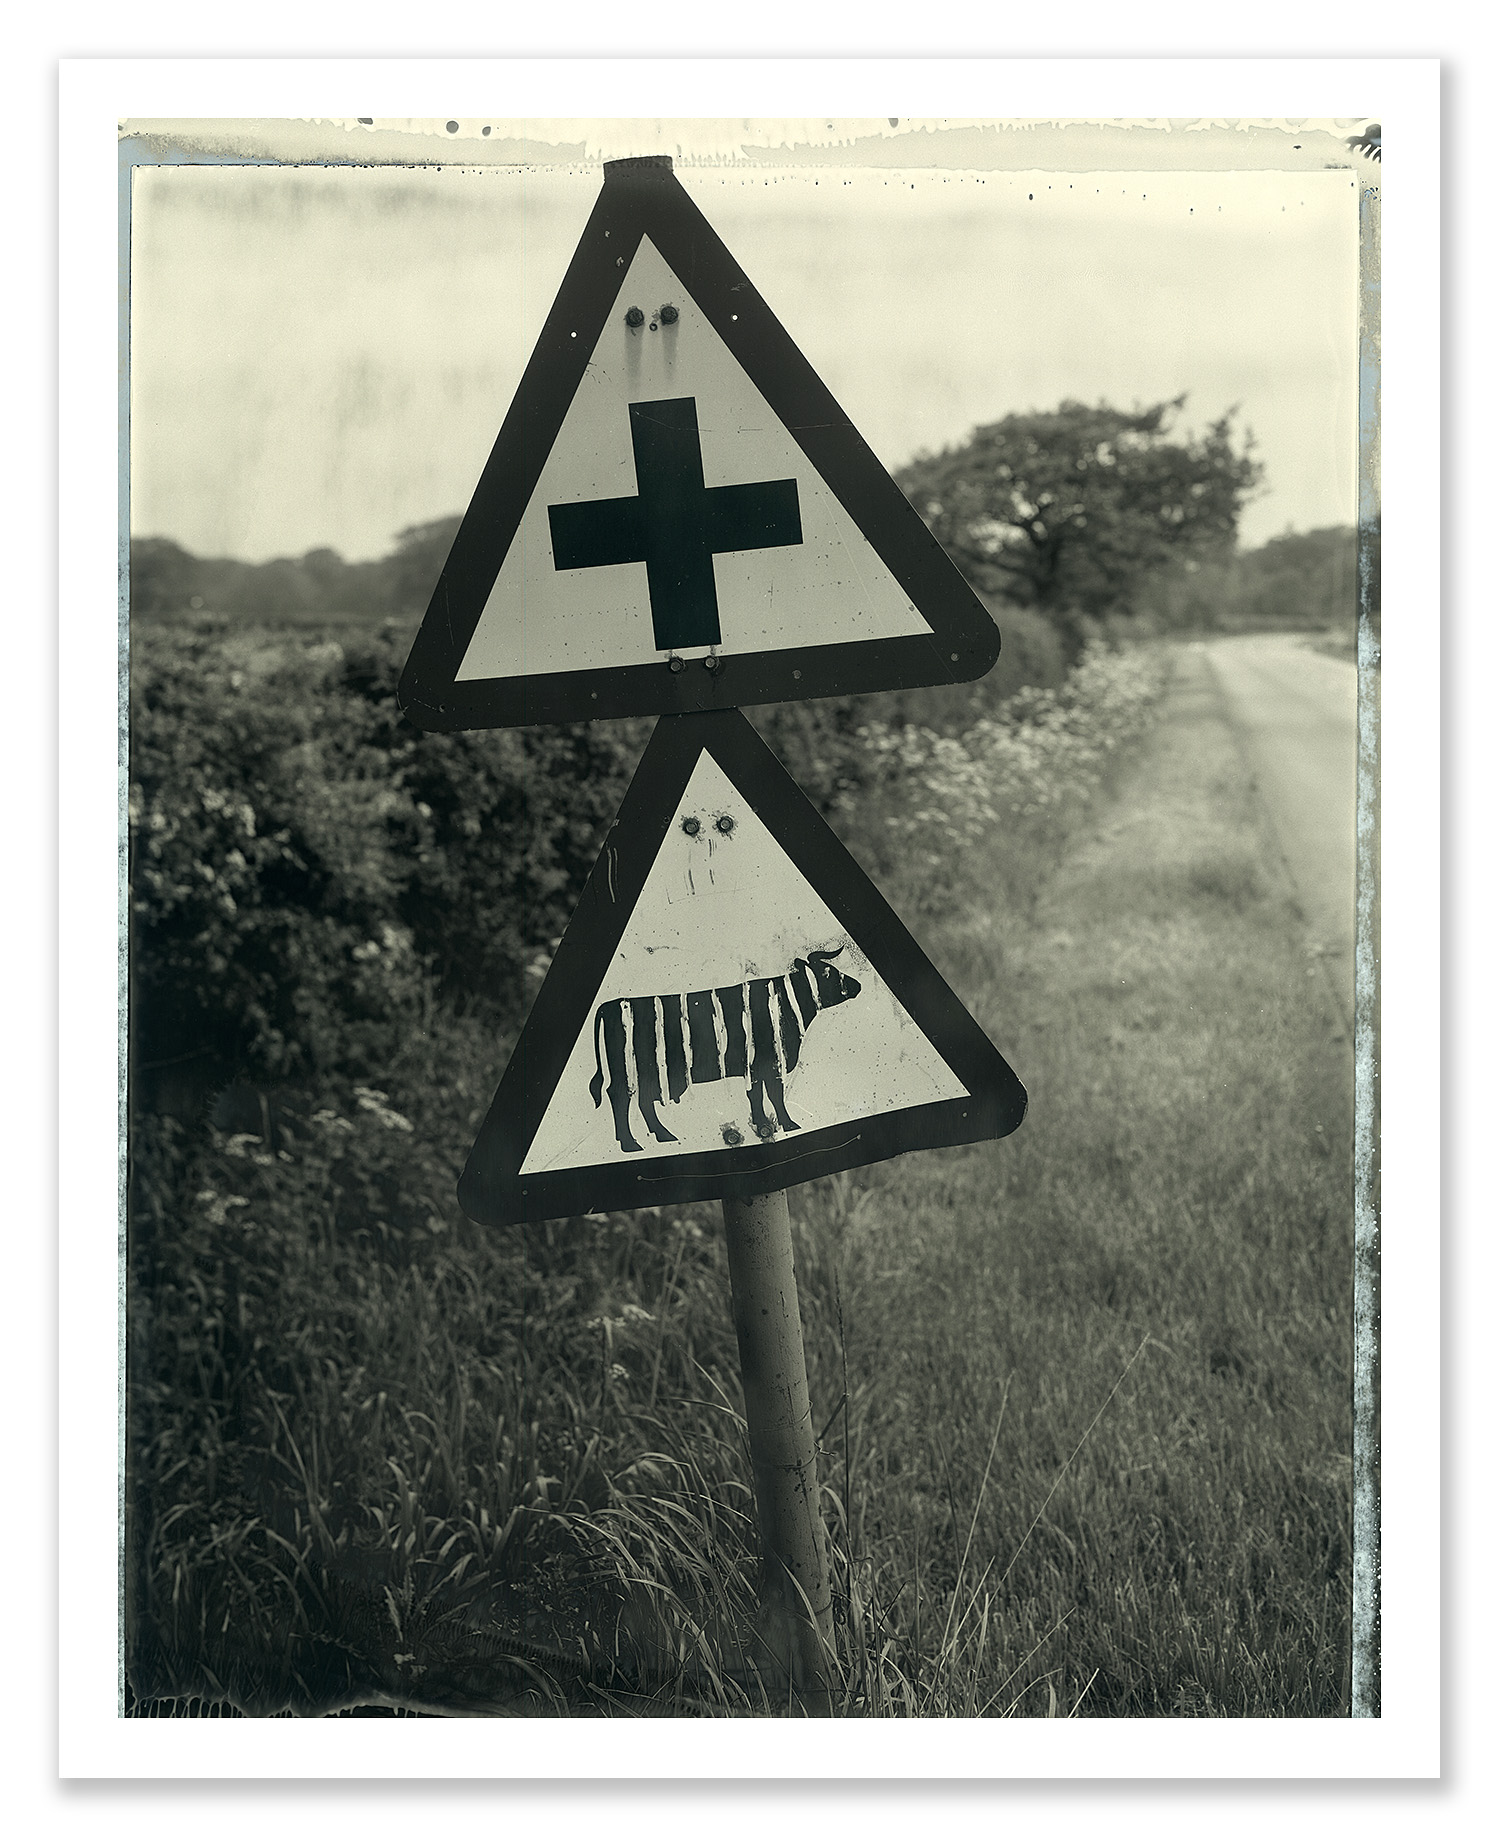 easton_zebra_roadsign